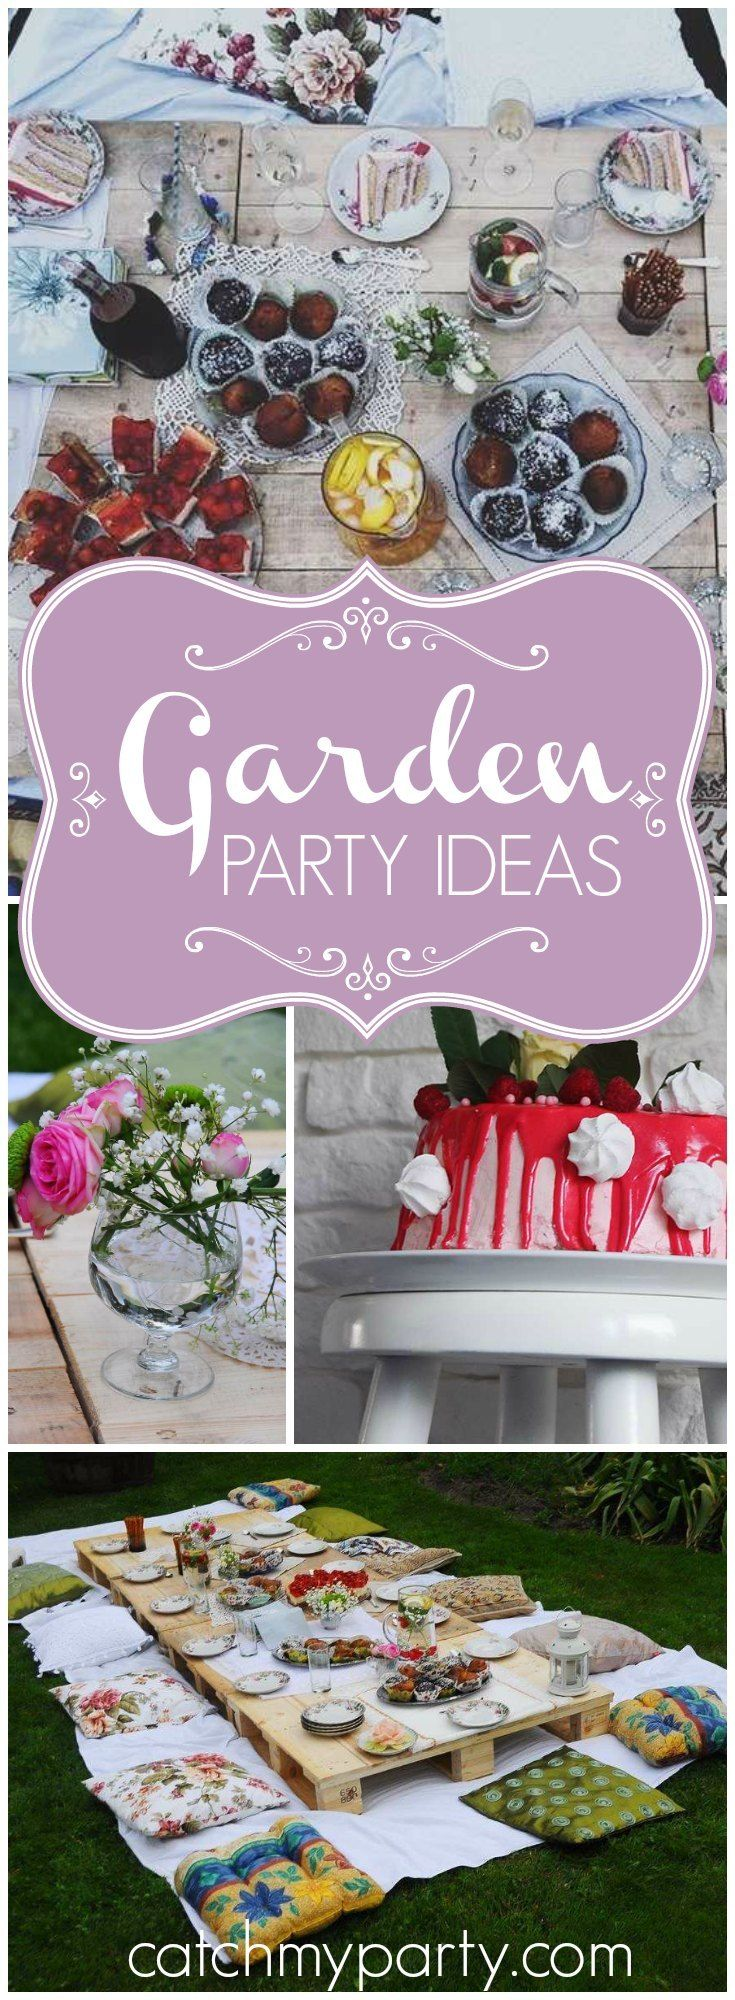 You have to see this outdoor garden party with so many lovely details! See more party ideas at Catchmyparty.com!